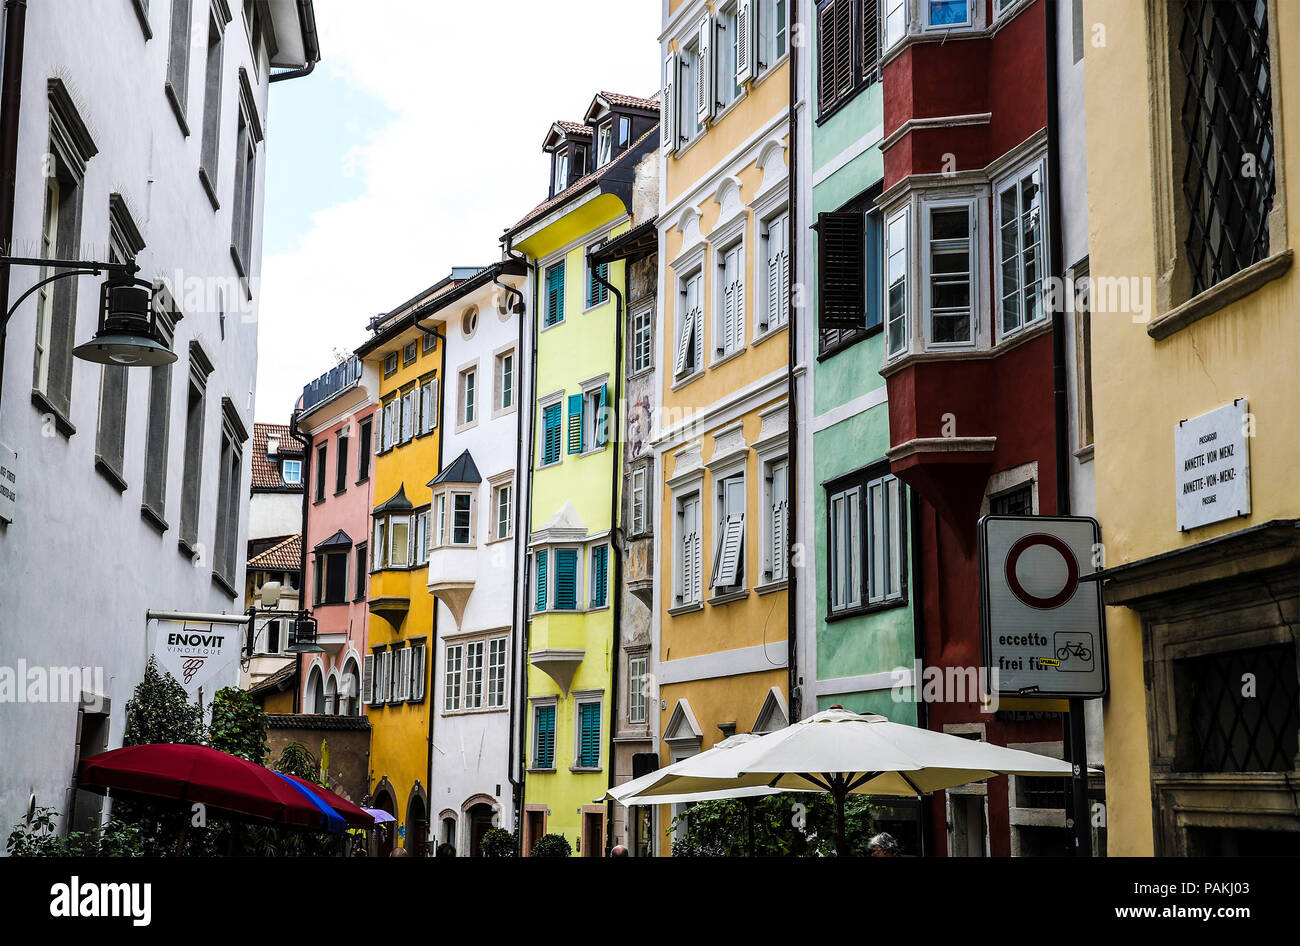 Bolzano. 23rd July, 2018. Photo taken on July 23, 2018 shows a view of the old Bolzano, north Italy. Bolzano is located in the Trentino-Alto Adige region. It was once a stop on the coach route between Italy and the flourishing Austro-Hungarian Empire. The city is blended with cultures. Thanks to the cool weather, Bolzano attracts lots of tourists during summer time. Credit: Jin Yu/Xinhua/Alamy Live News Stock Photo